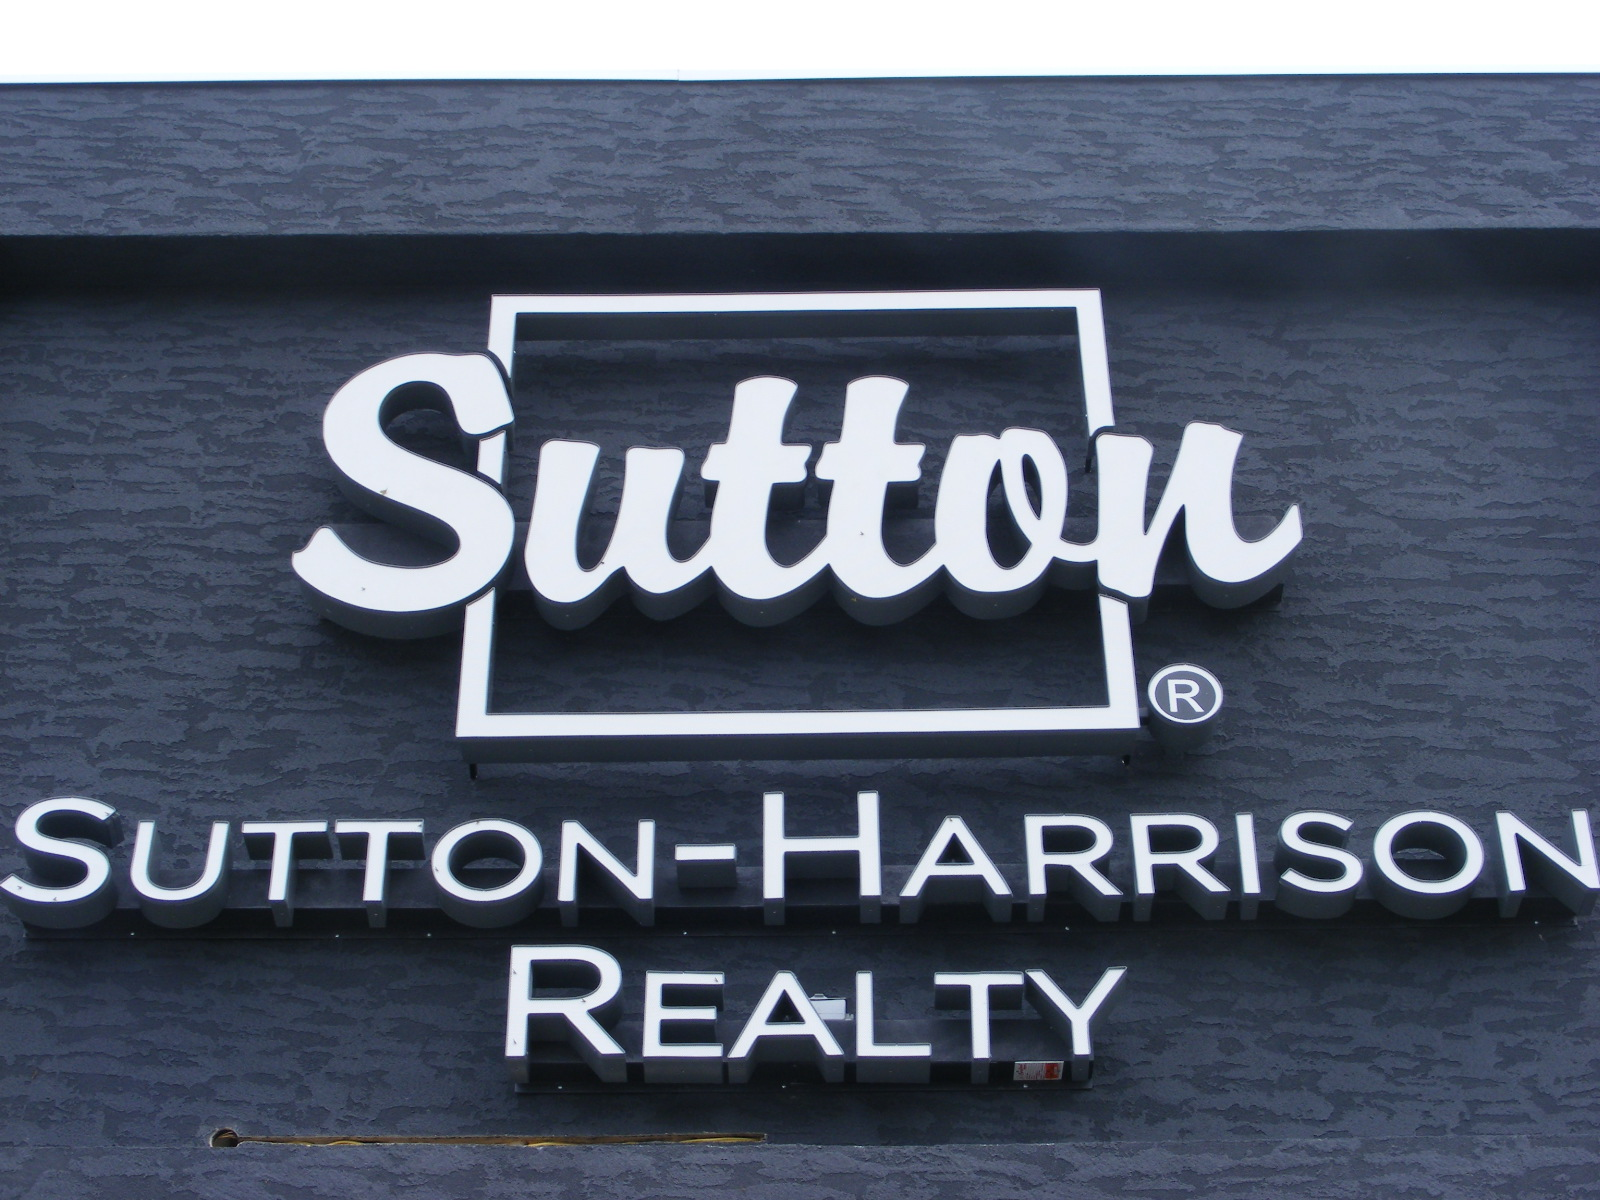 sutton+harrison+realty